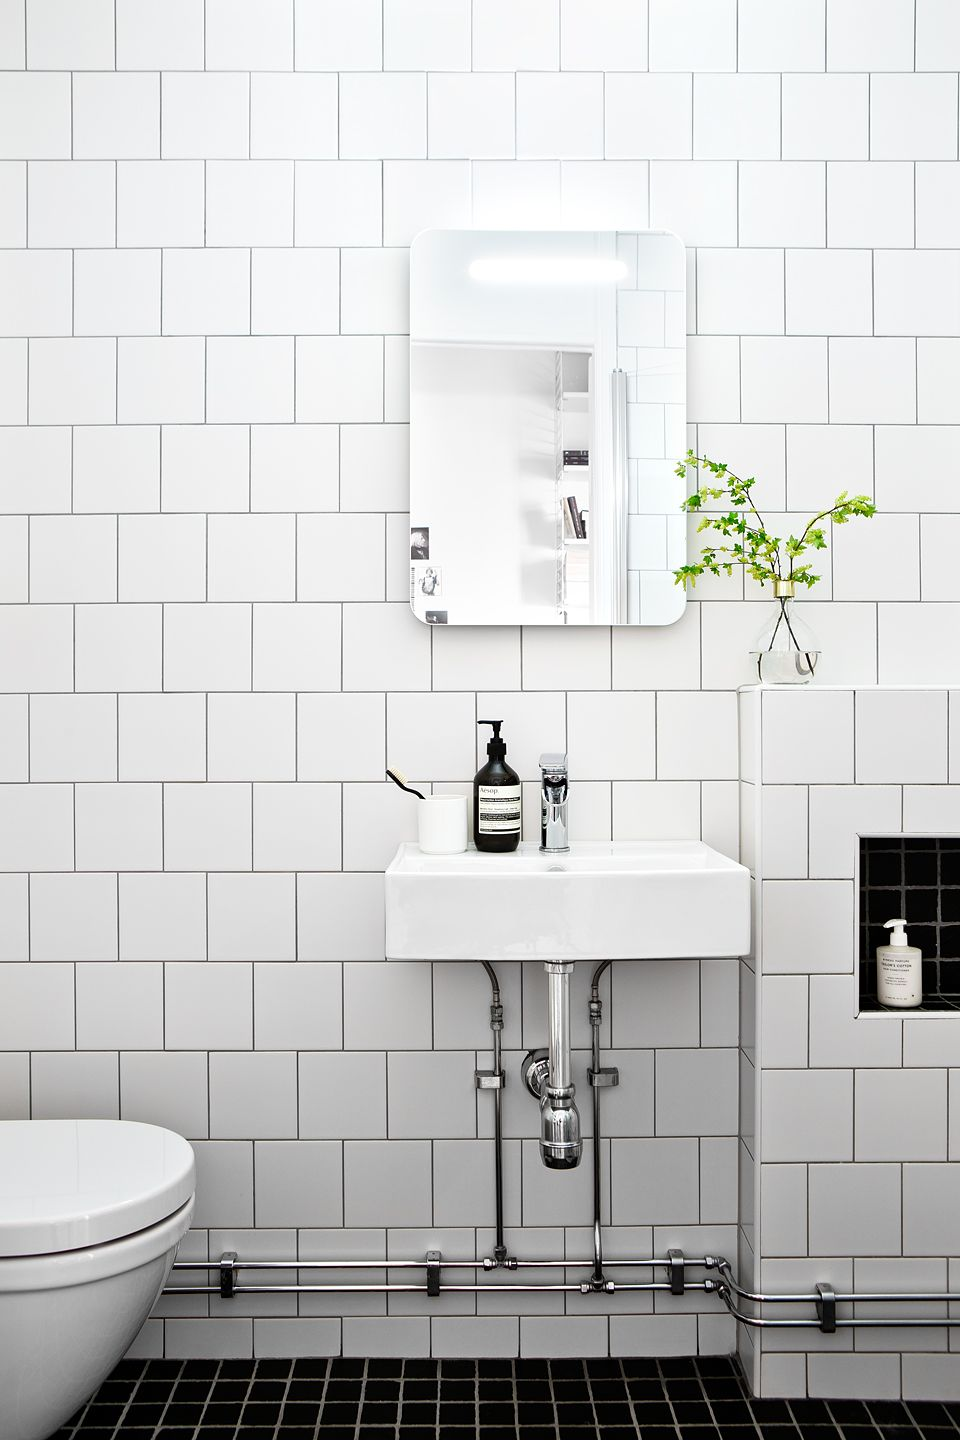 11 tips for a (minimal) clutter free bathroom | Bathroom | Pinterest ...